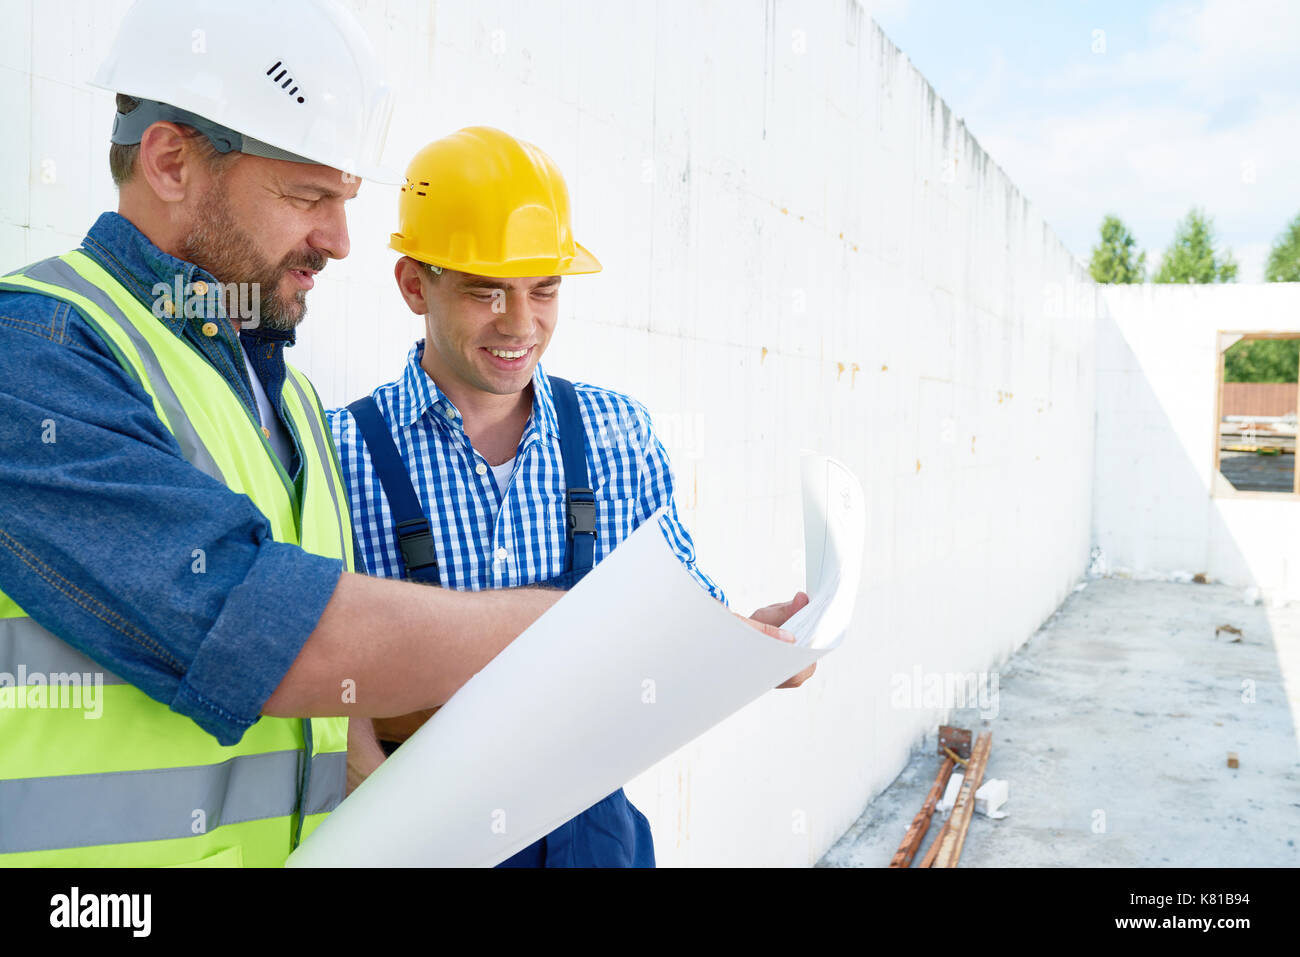 Productive Discussion of Blueprint - Stock Image